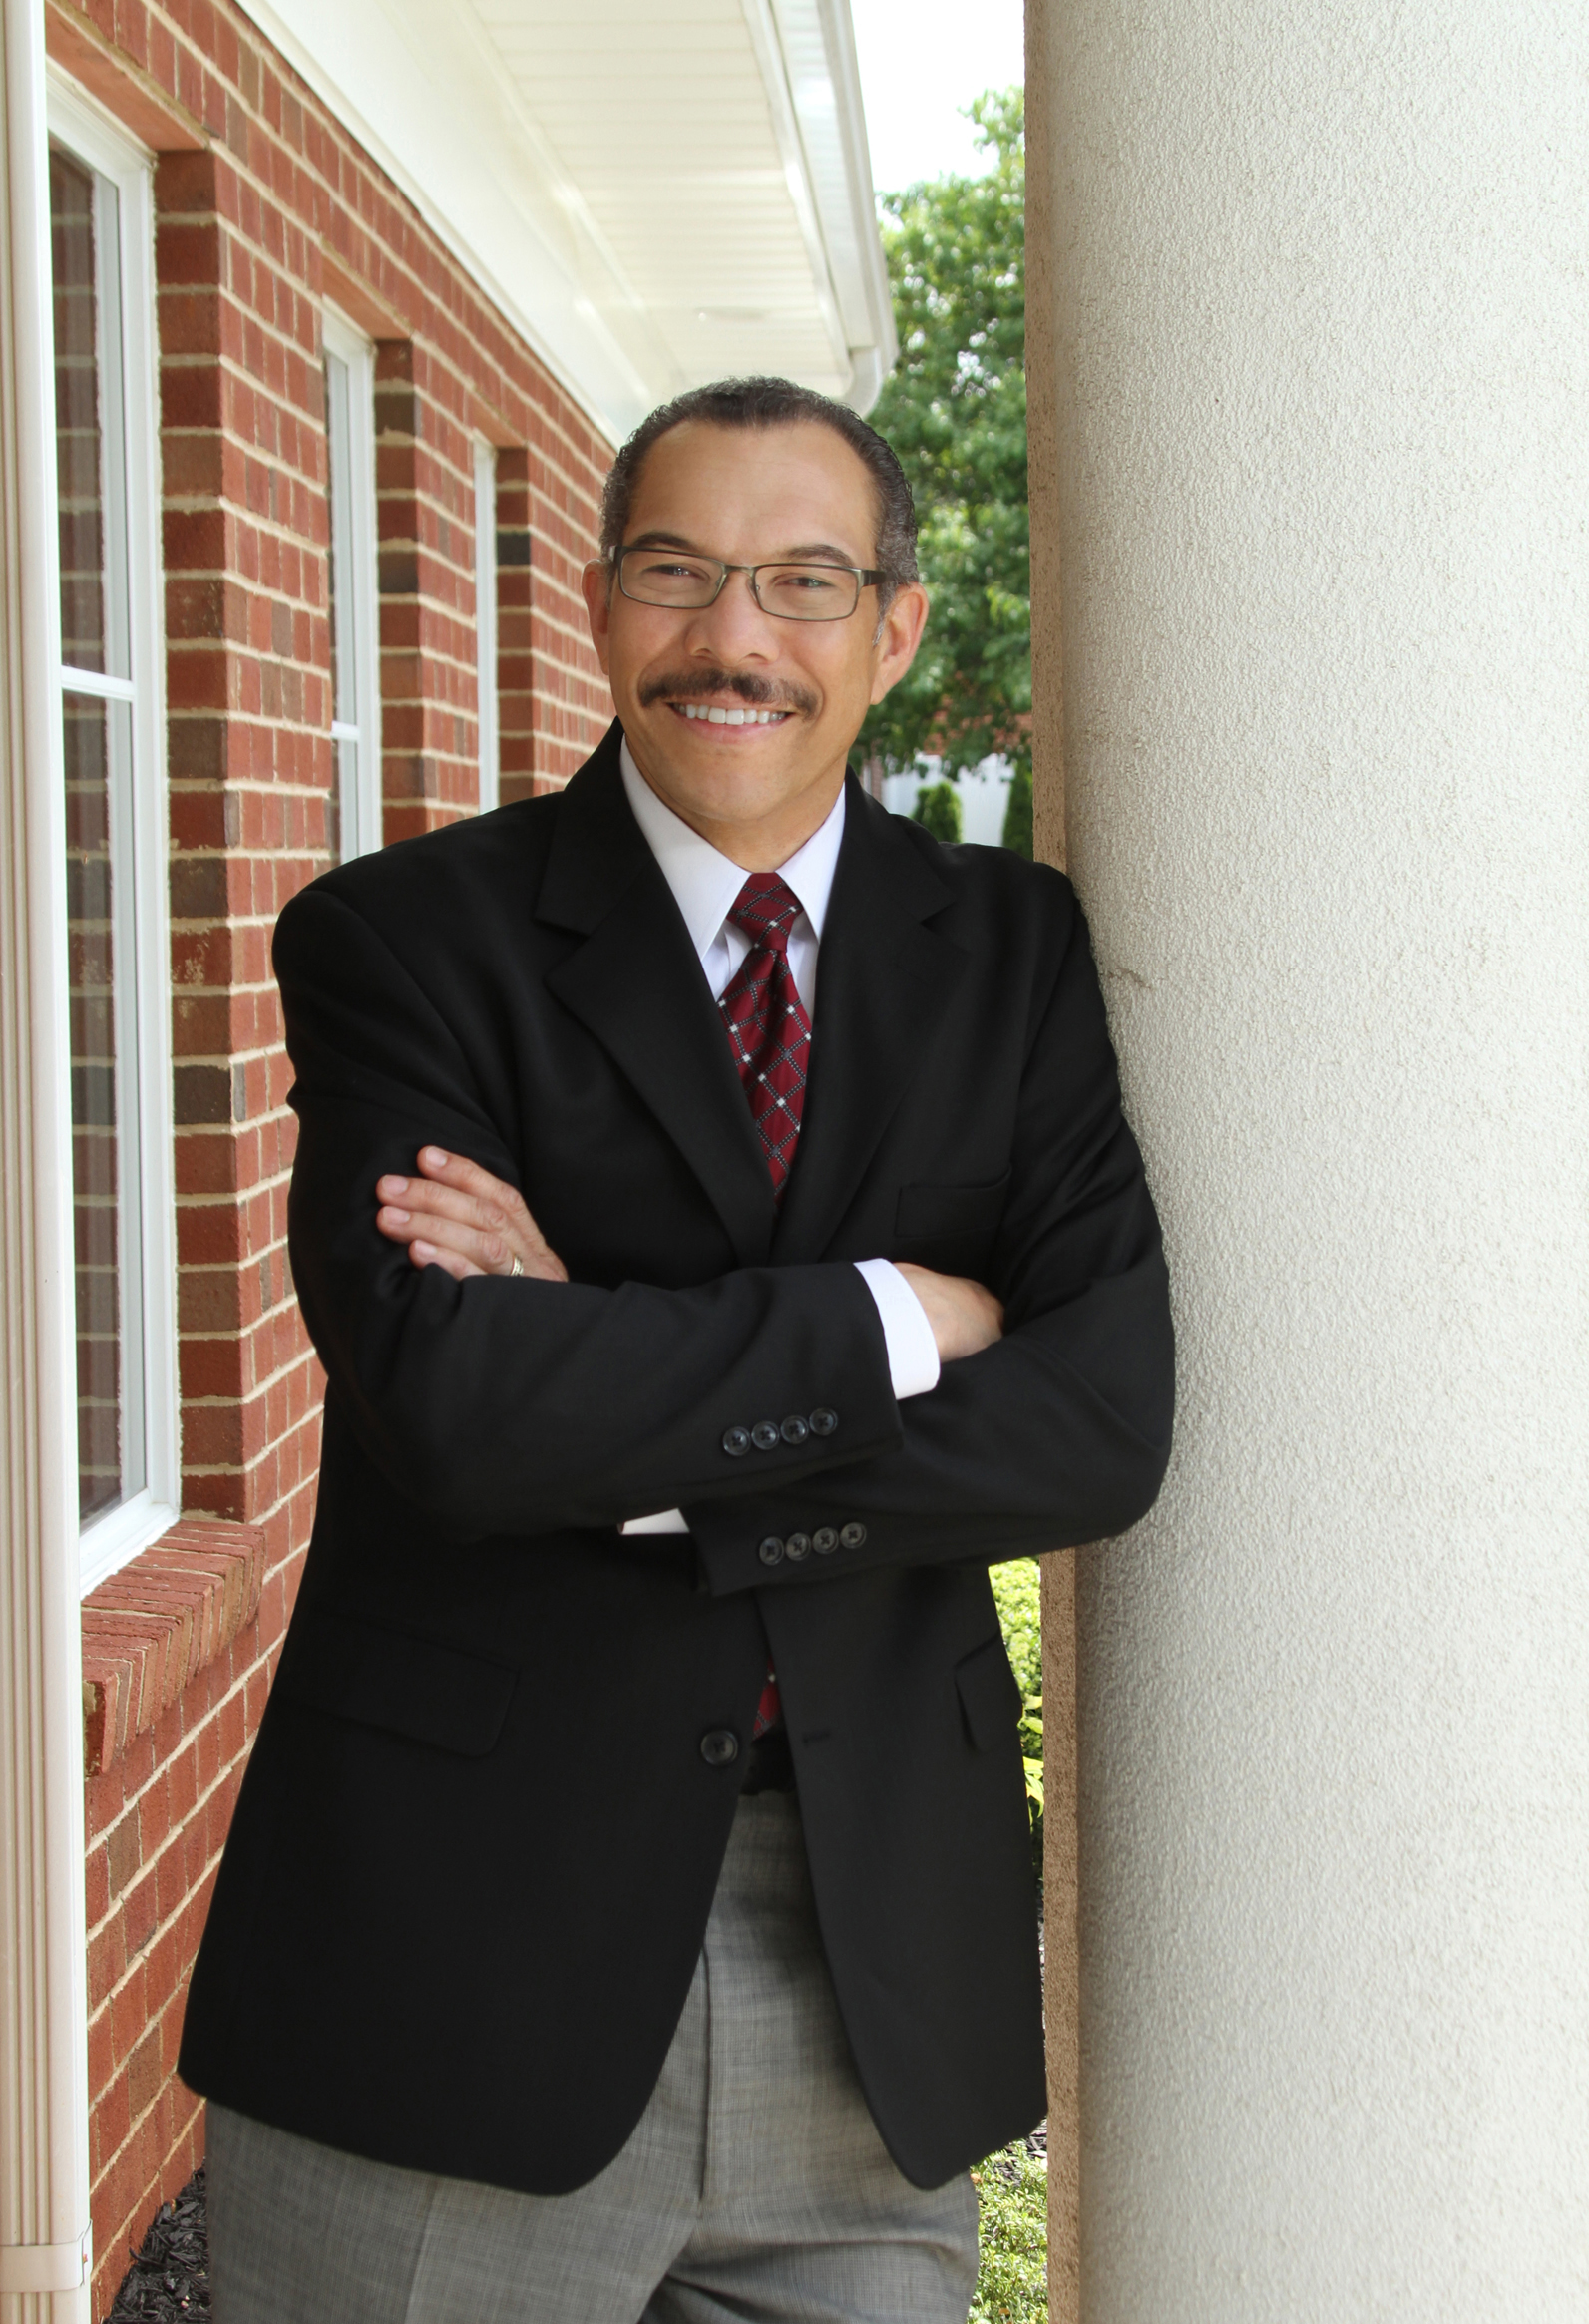 Black Enterprise welcomed Bernard E. Robinson (pictured) and his company, Networking Technologies and Support Inc., to the BE100s Industrial/Service list this year. Networking Technologies is a high-technology integration services business and came in at No. 99.